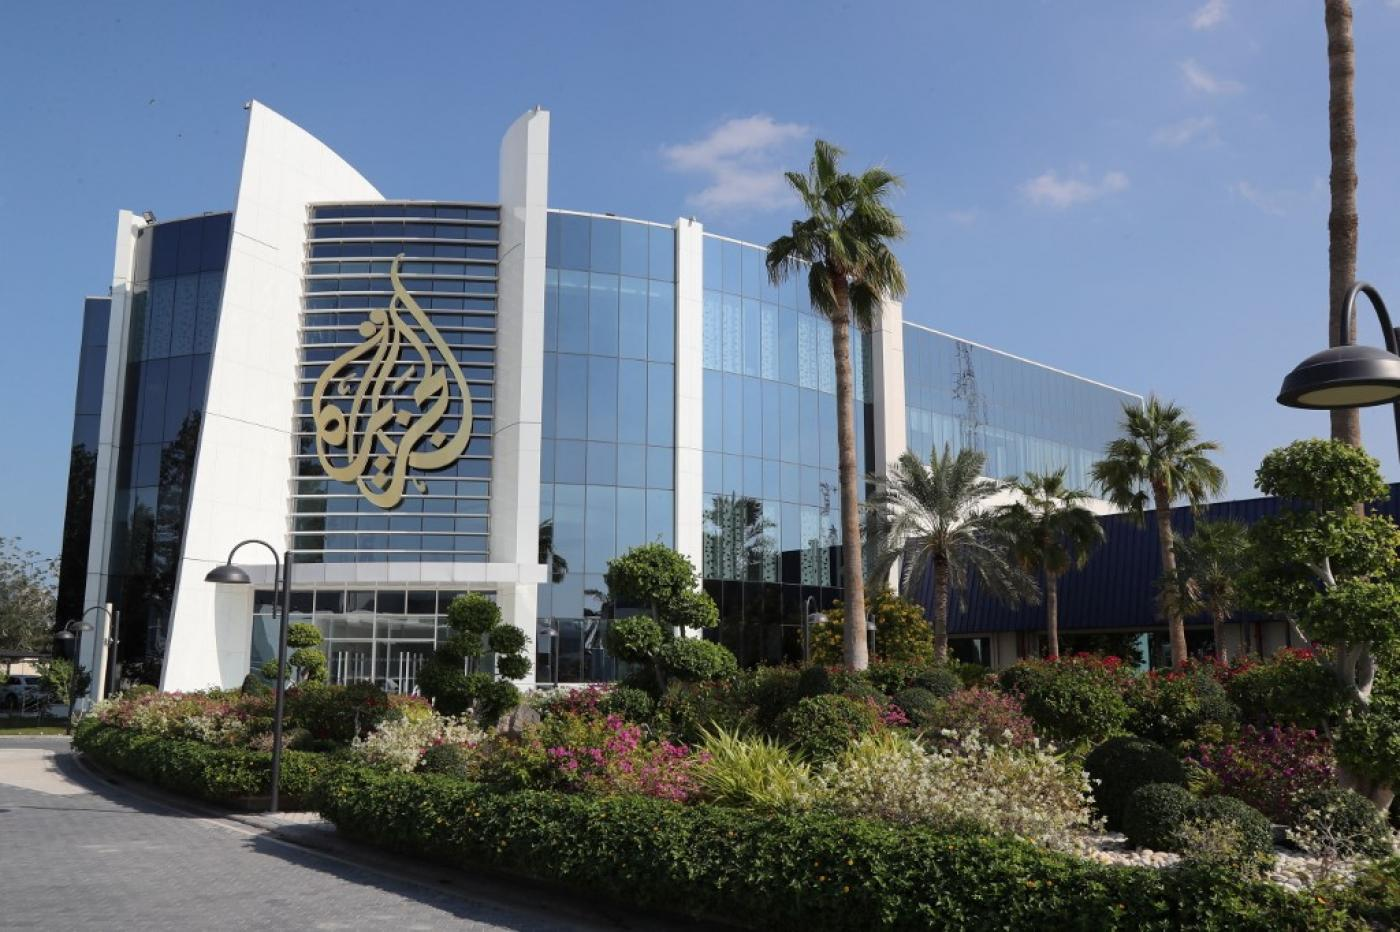 Al Jazeera became a significant presence in the US in 2013, when it launched its left-leaning Al Jazeera America news channel and website.